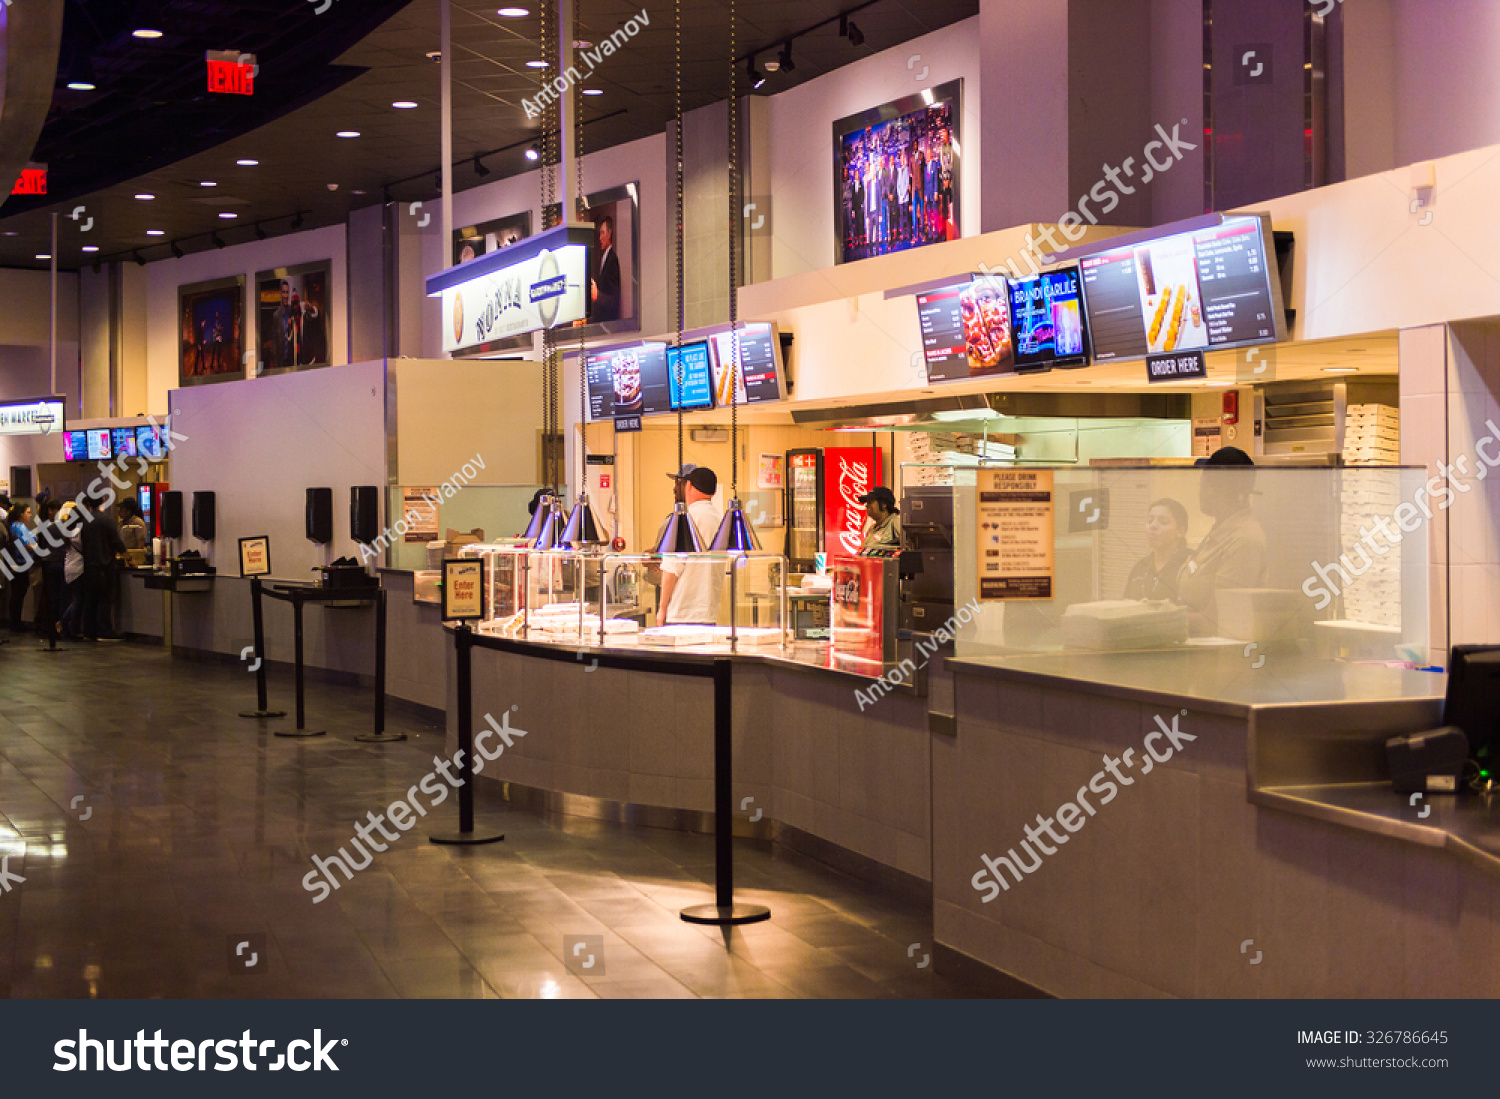 NEW YORK, USA - OCT 8, 2015: Food court at the Madison Square Garden ...